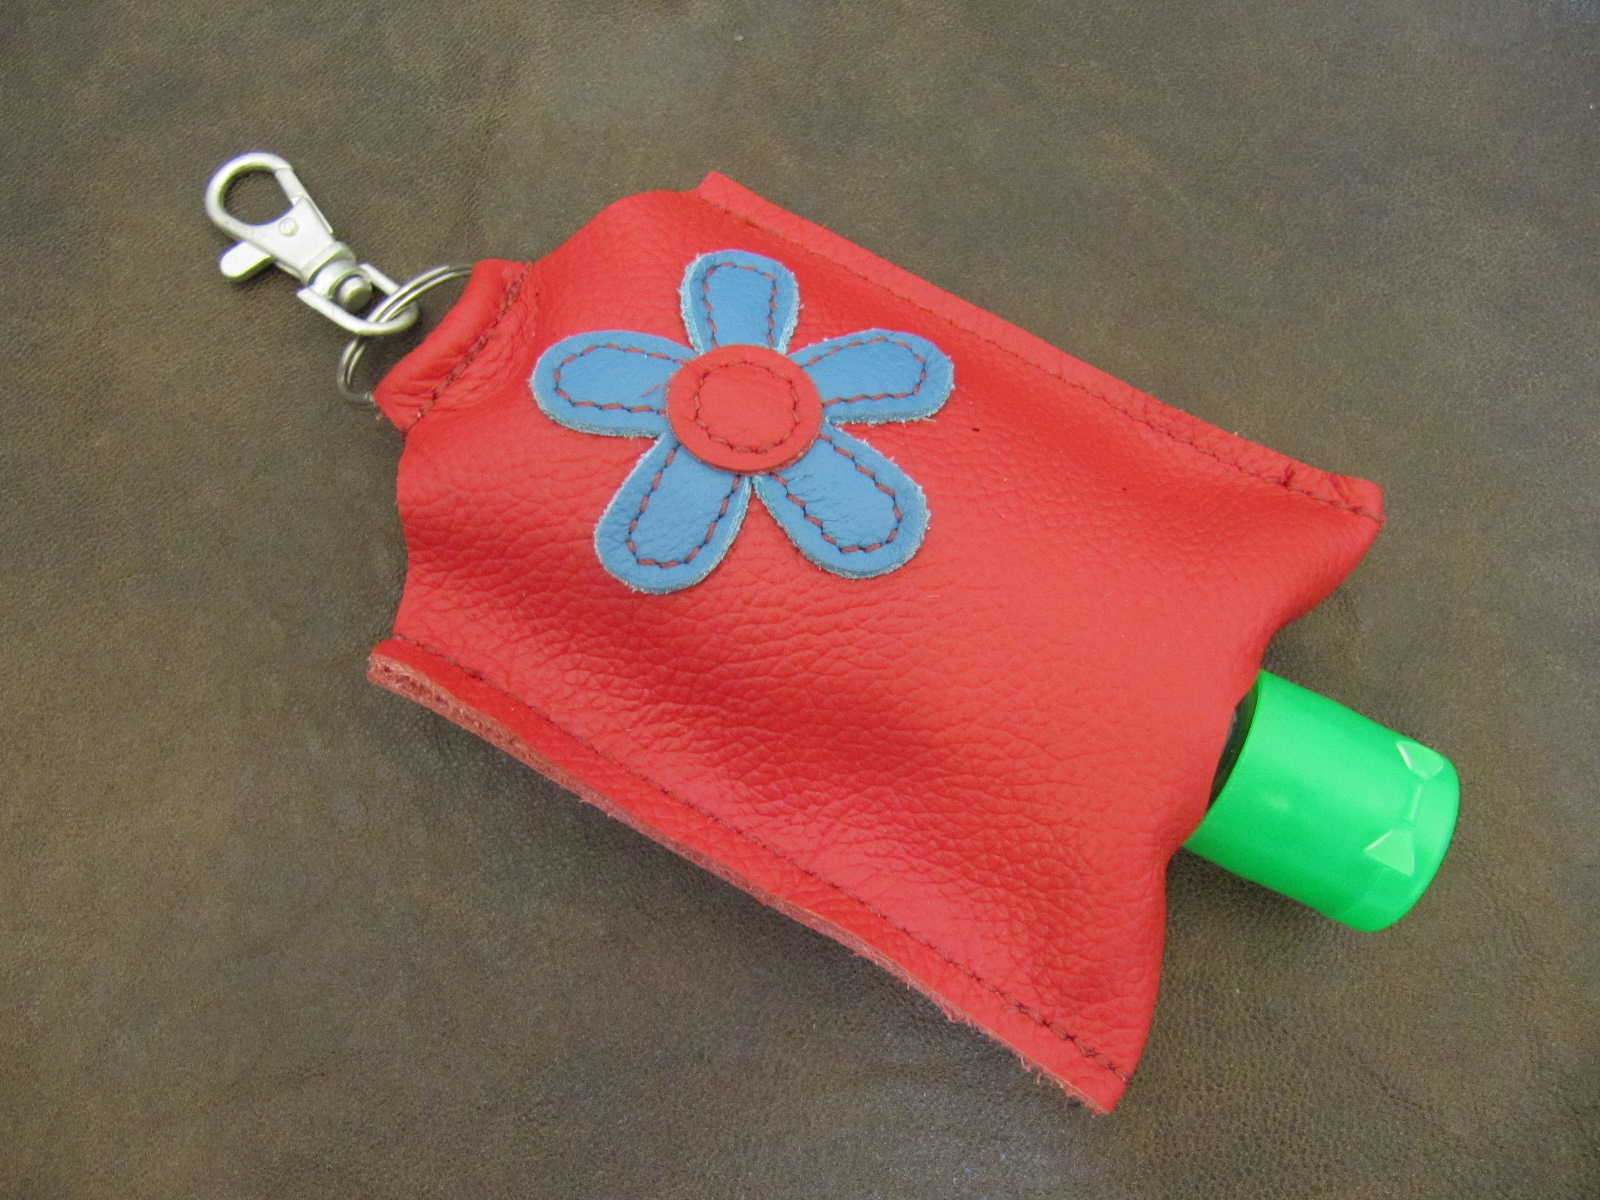 Leather Hand Sanitizer Carrier - Red with Blue Flower